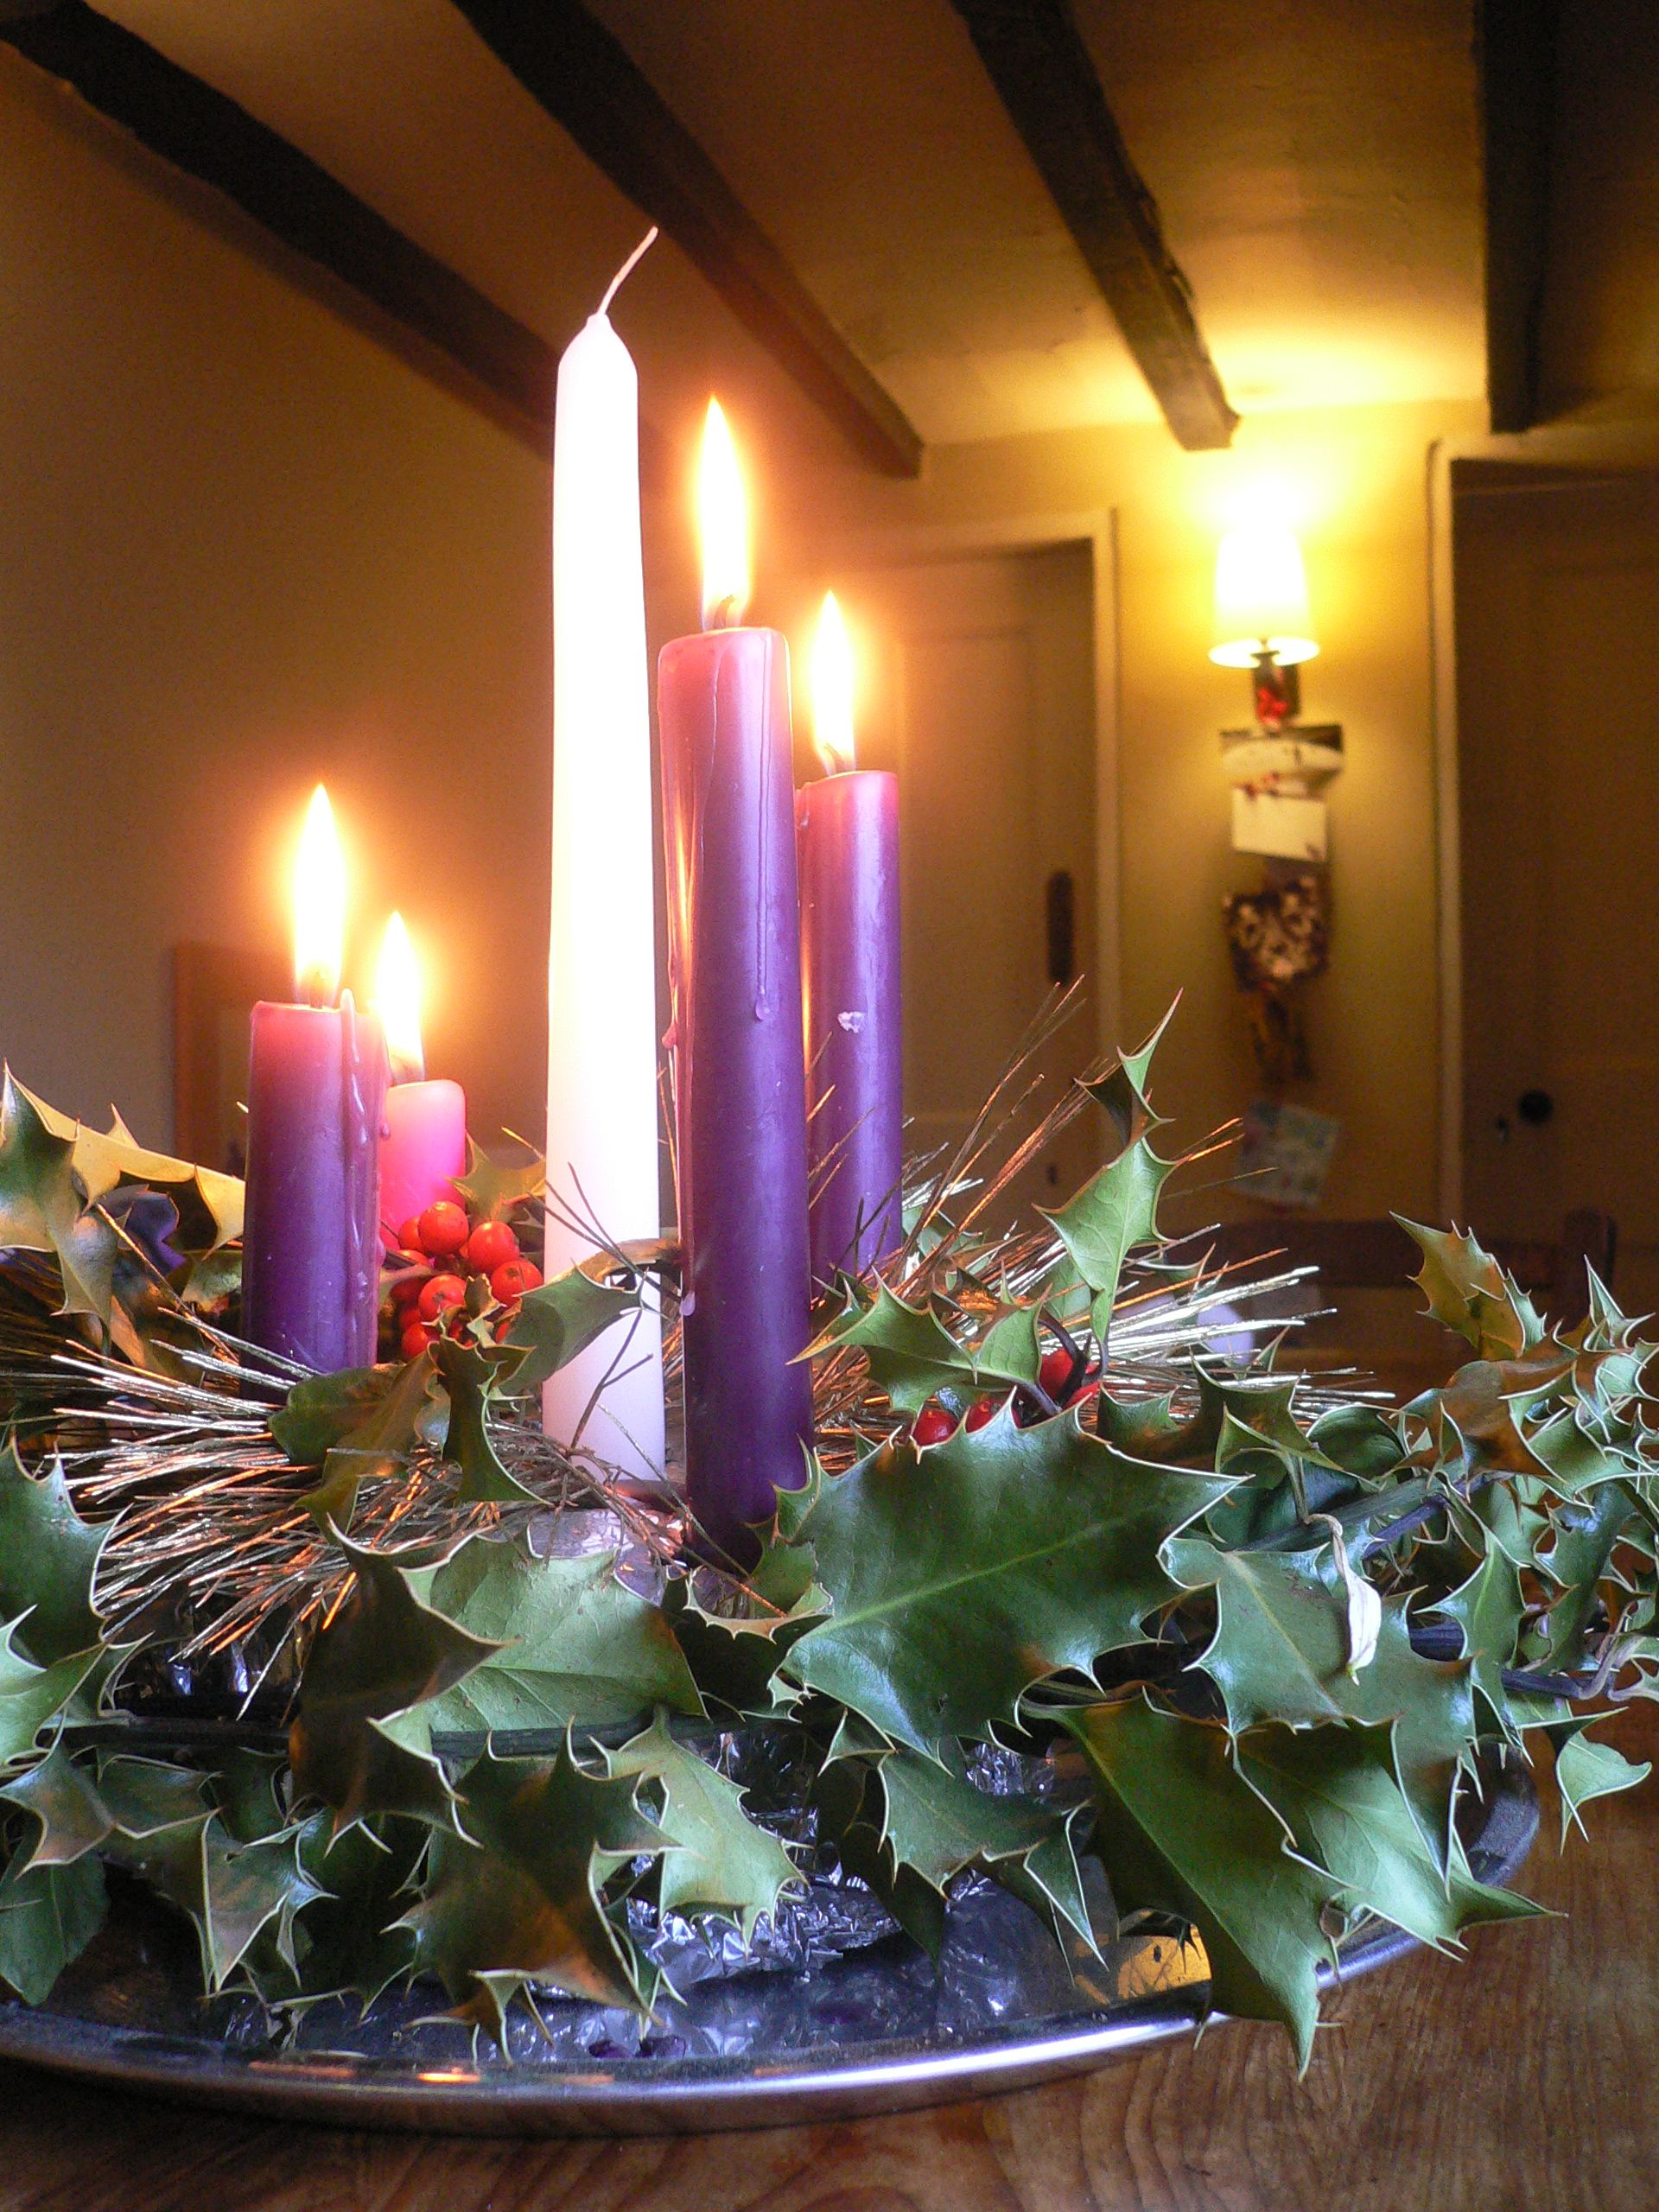 The Ring Or Wheel Of The Advent Wreath Of Evergreens Decorated With